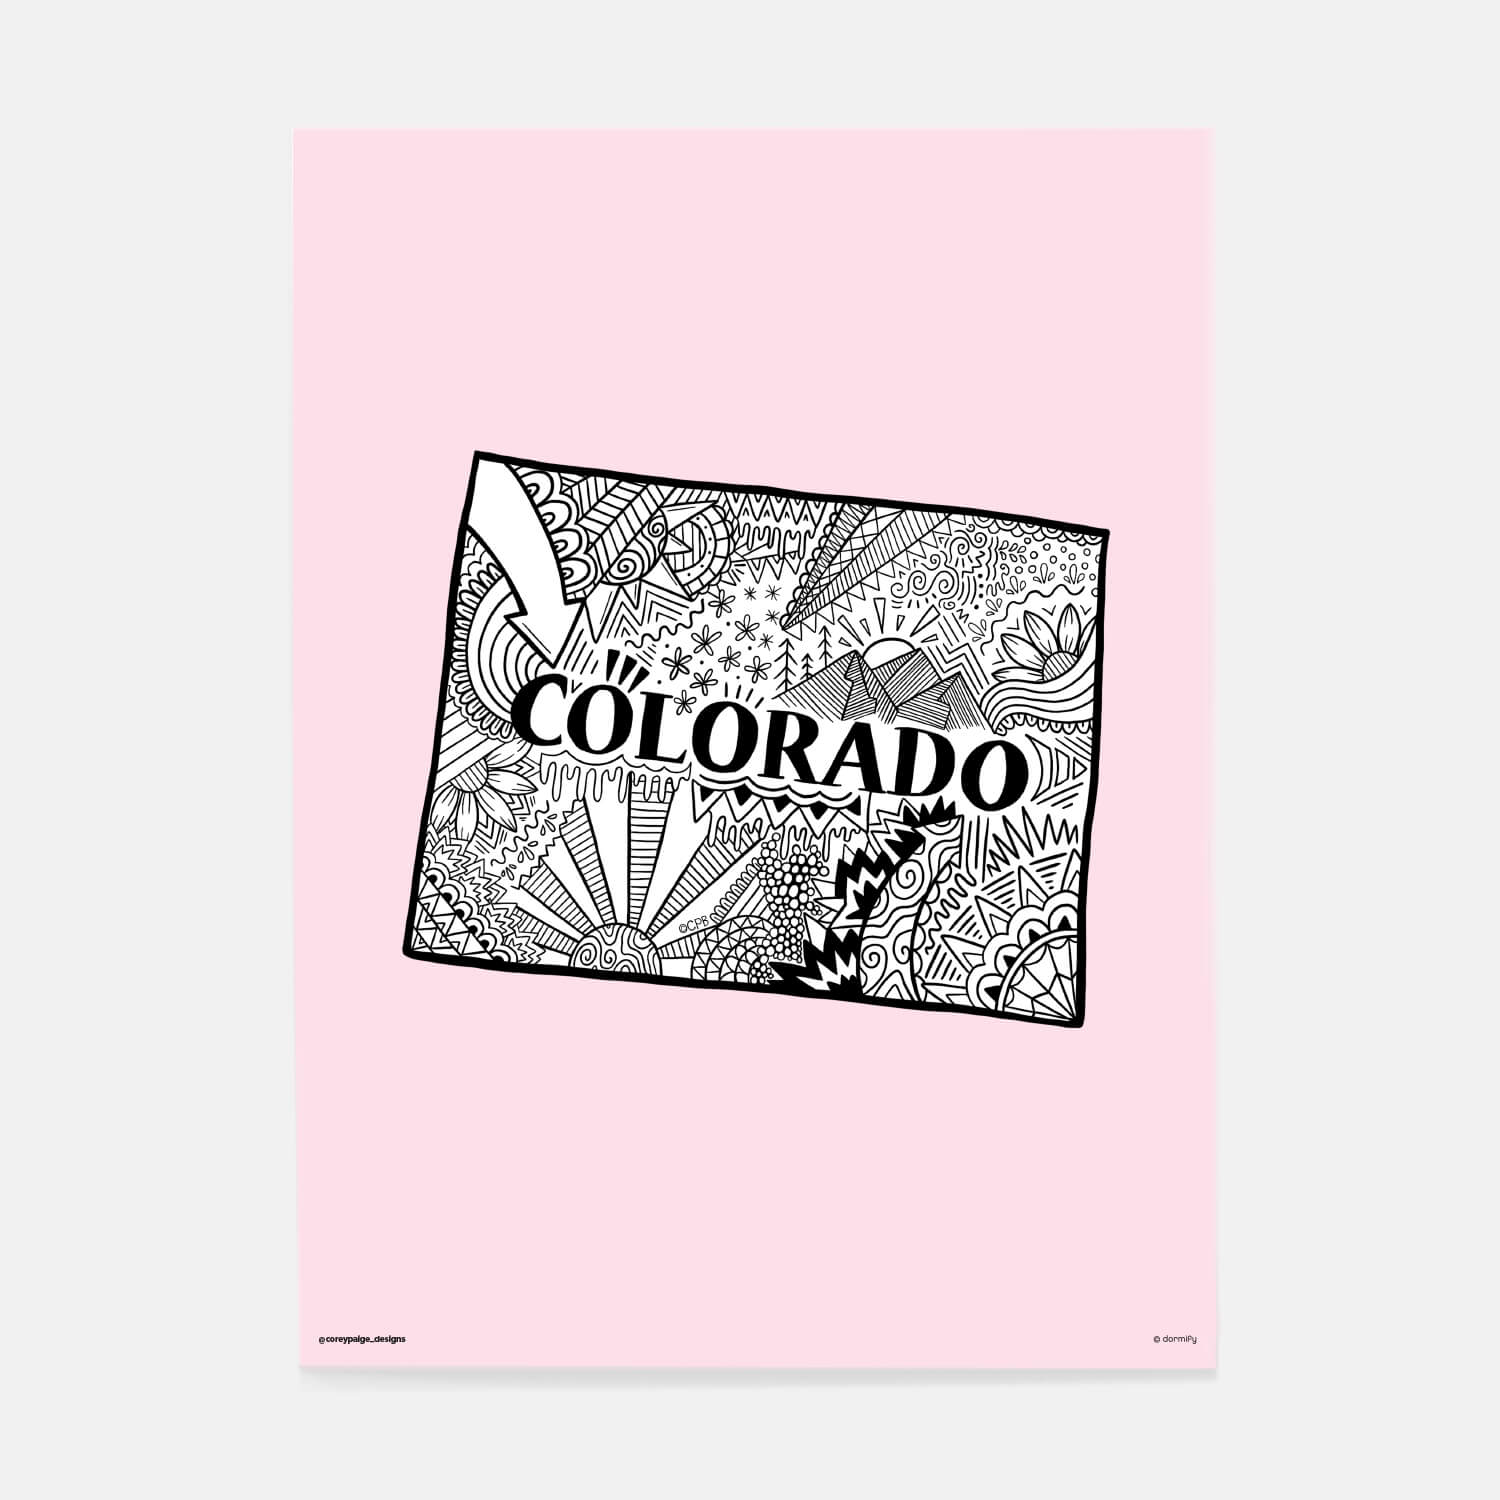 colorado state pride poster by corey paige - light pink 16x20 | wall